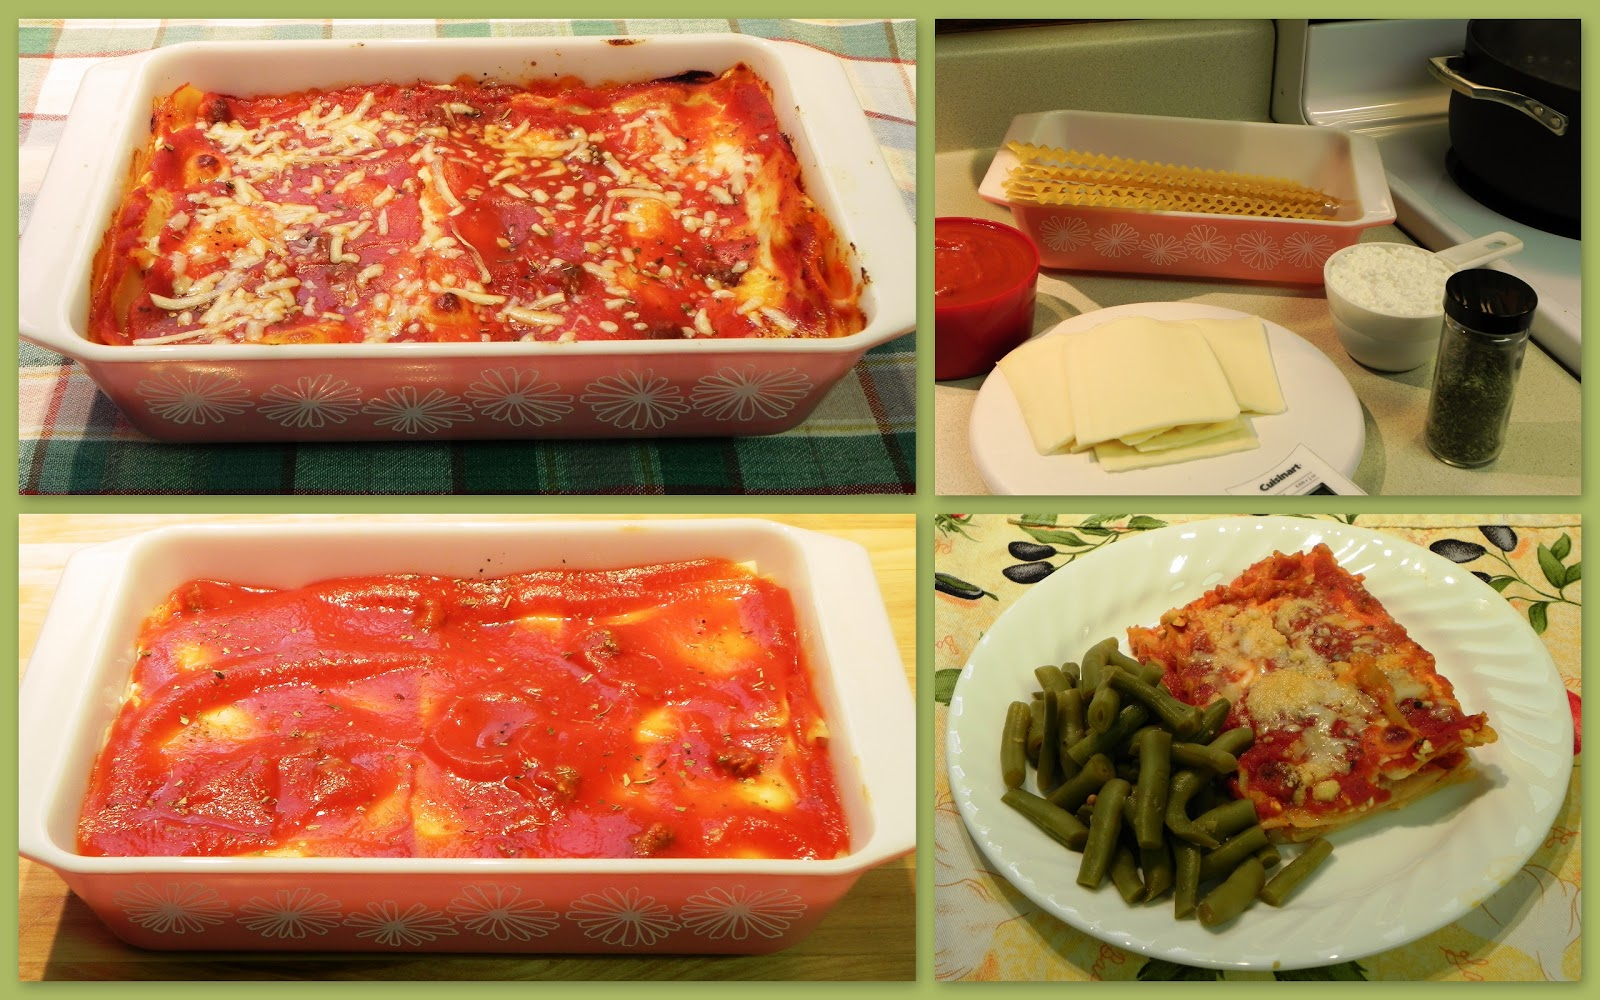 The iowa housewife family favorites lazy day lasagna for Better homes and gardens lasagna